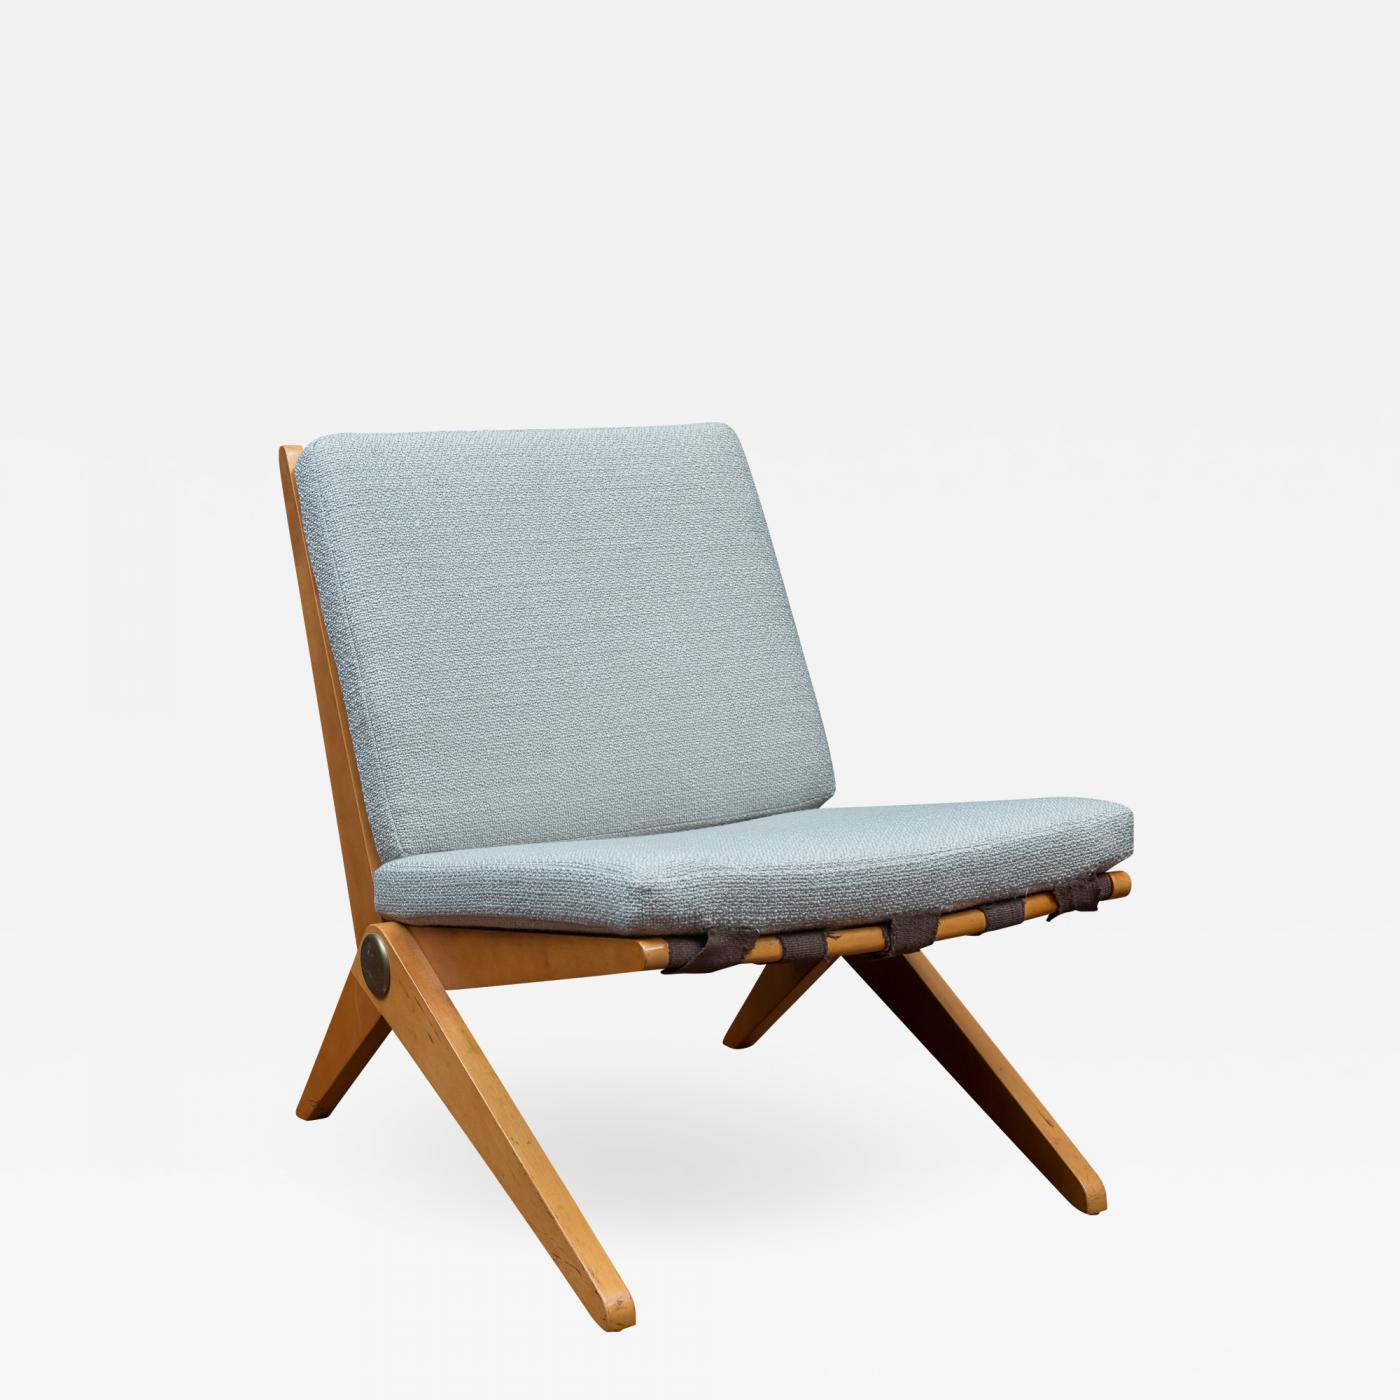 Knoll International Pierre Jeanneret Pierre Jeanneret Scissor Chair For Knoll International